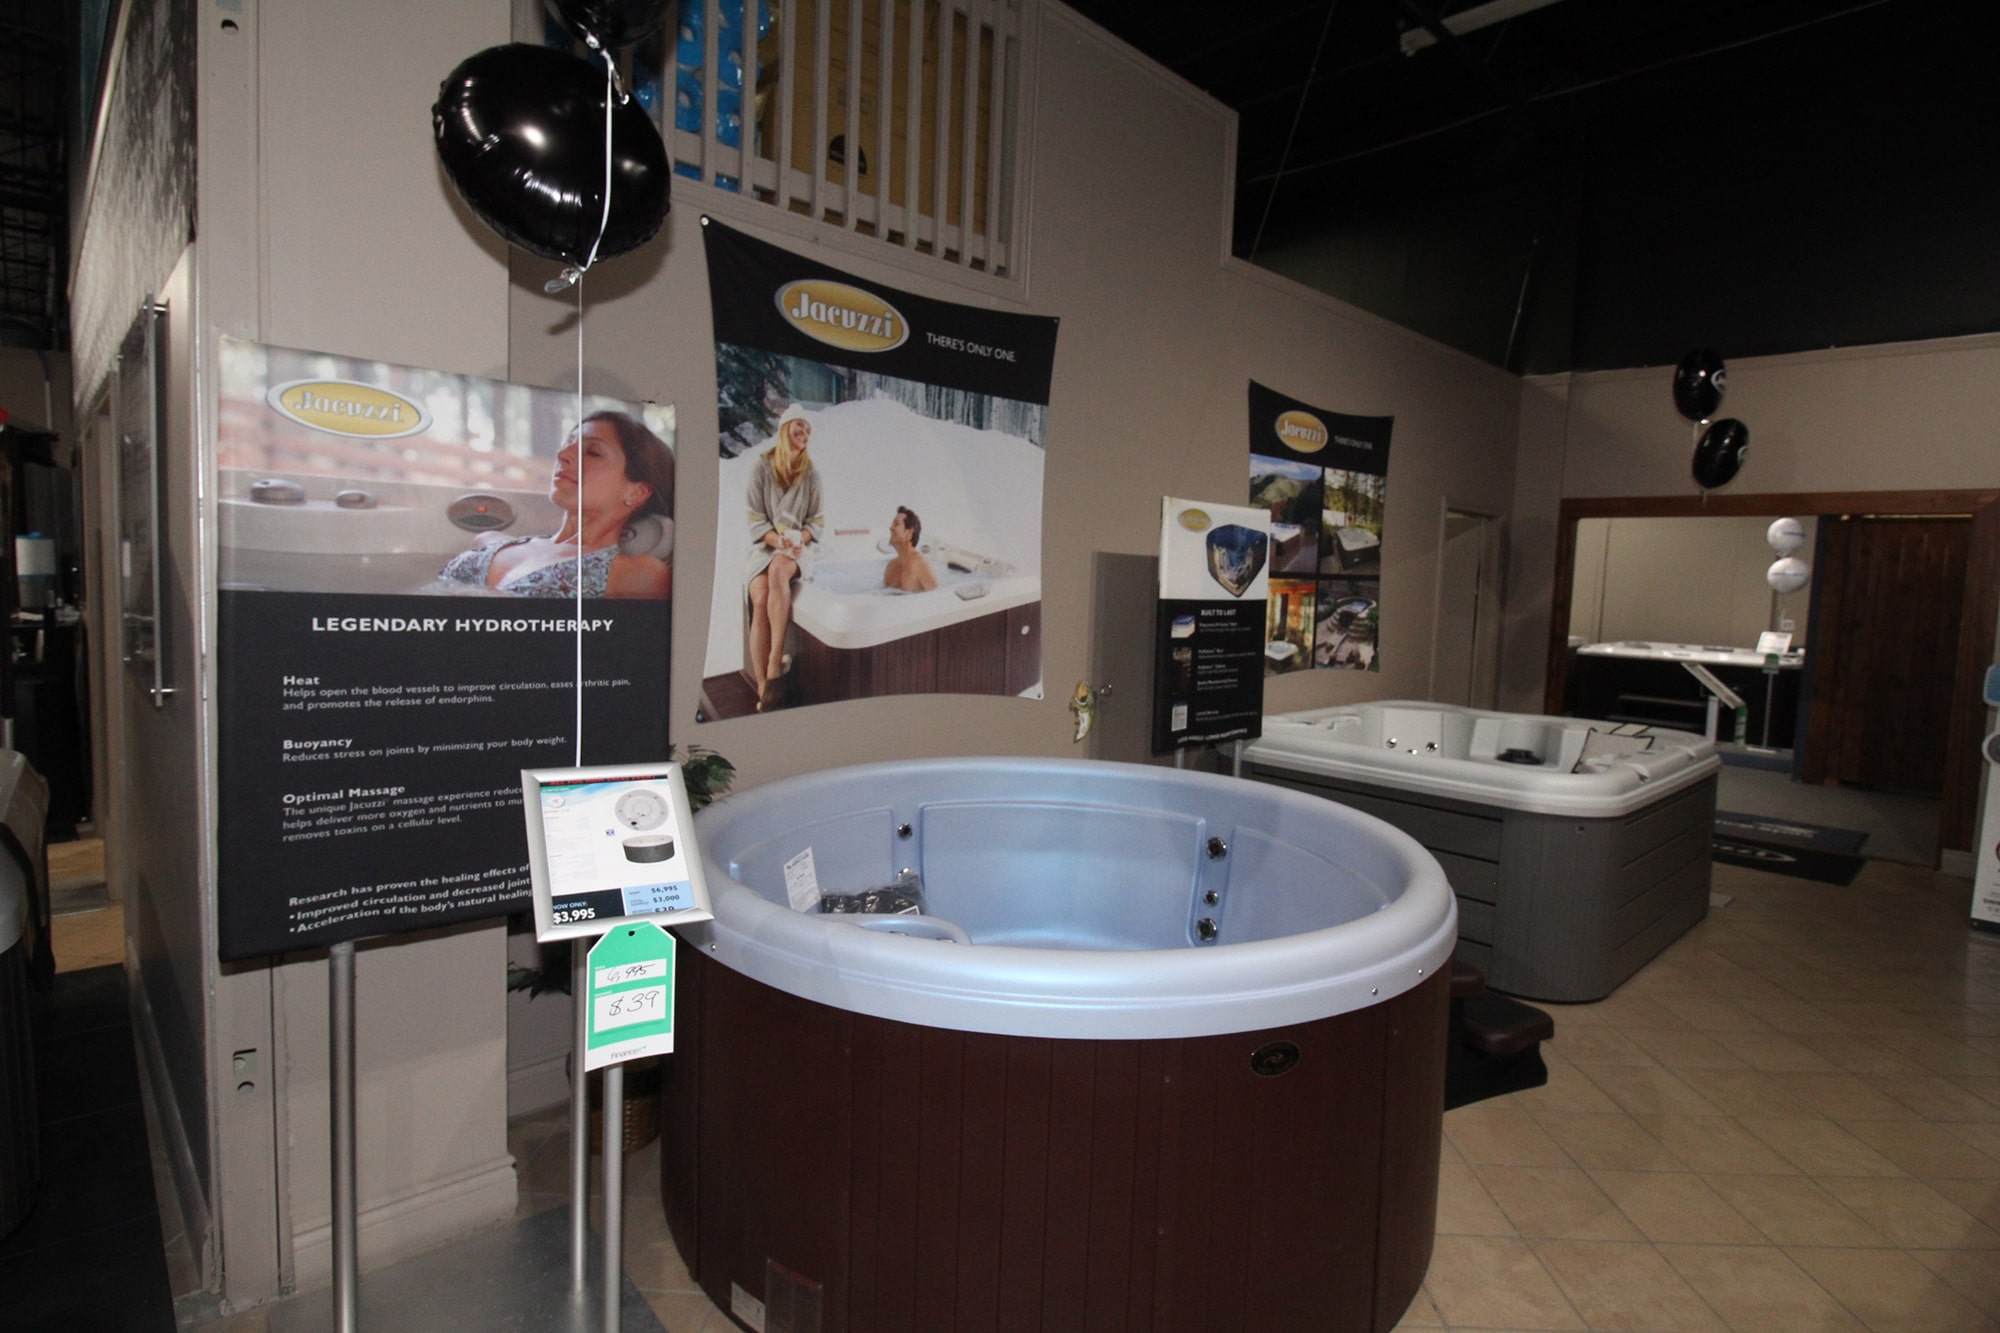 Jacuzzi Kitchener Spa Showroom